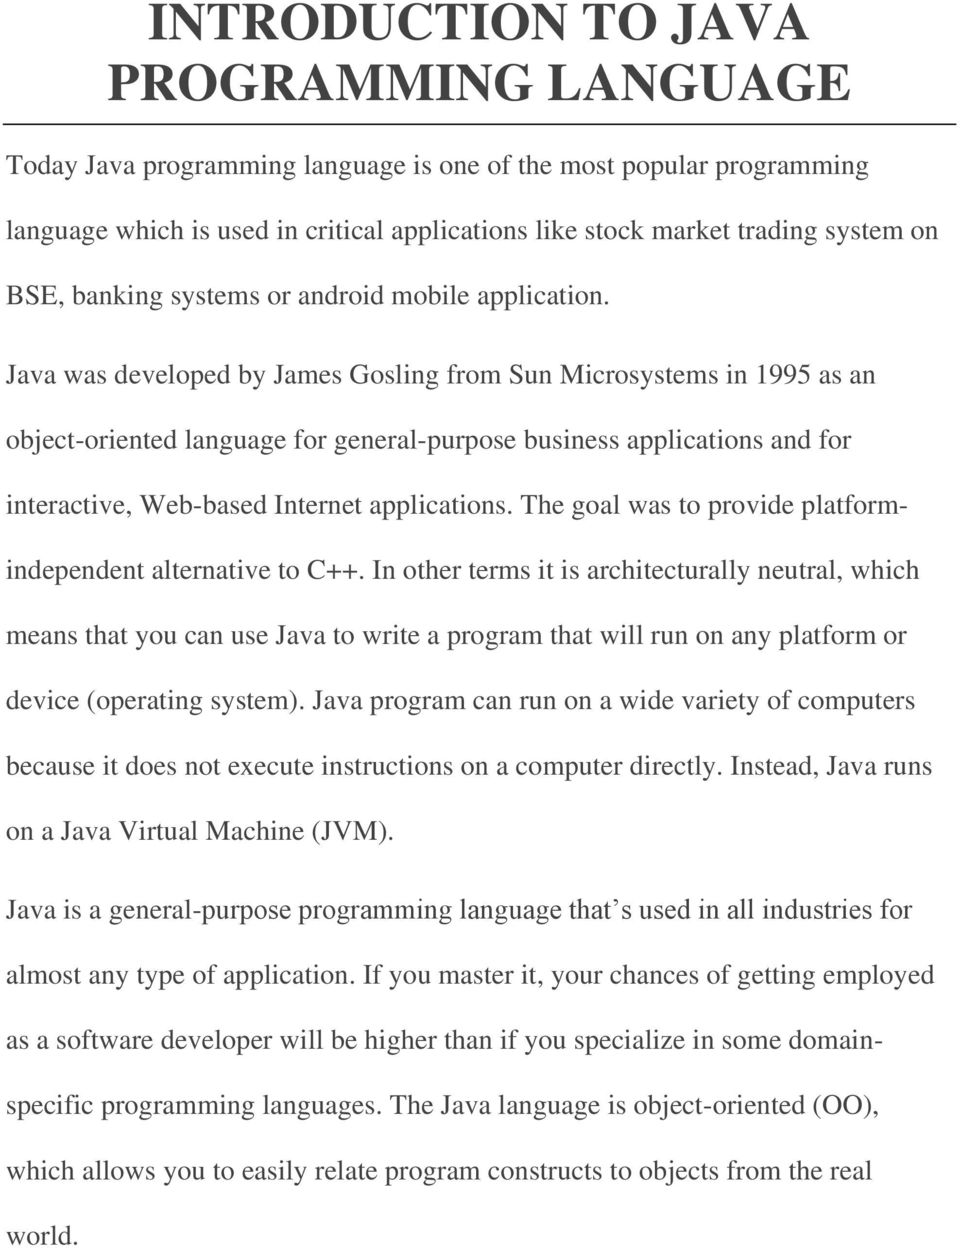 Java was developed by James Gosling from Sun Microsystems in 1995 as an object-oriented language for general-purpose business applications and for interactive, Web-based Internet applications.